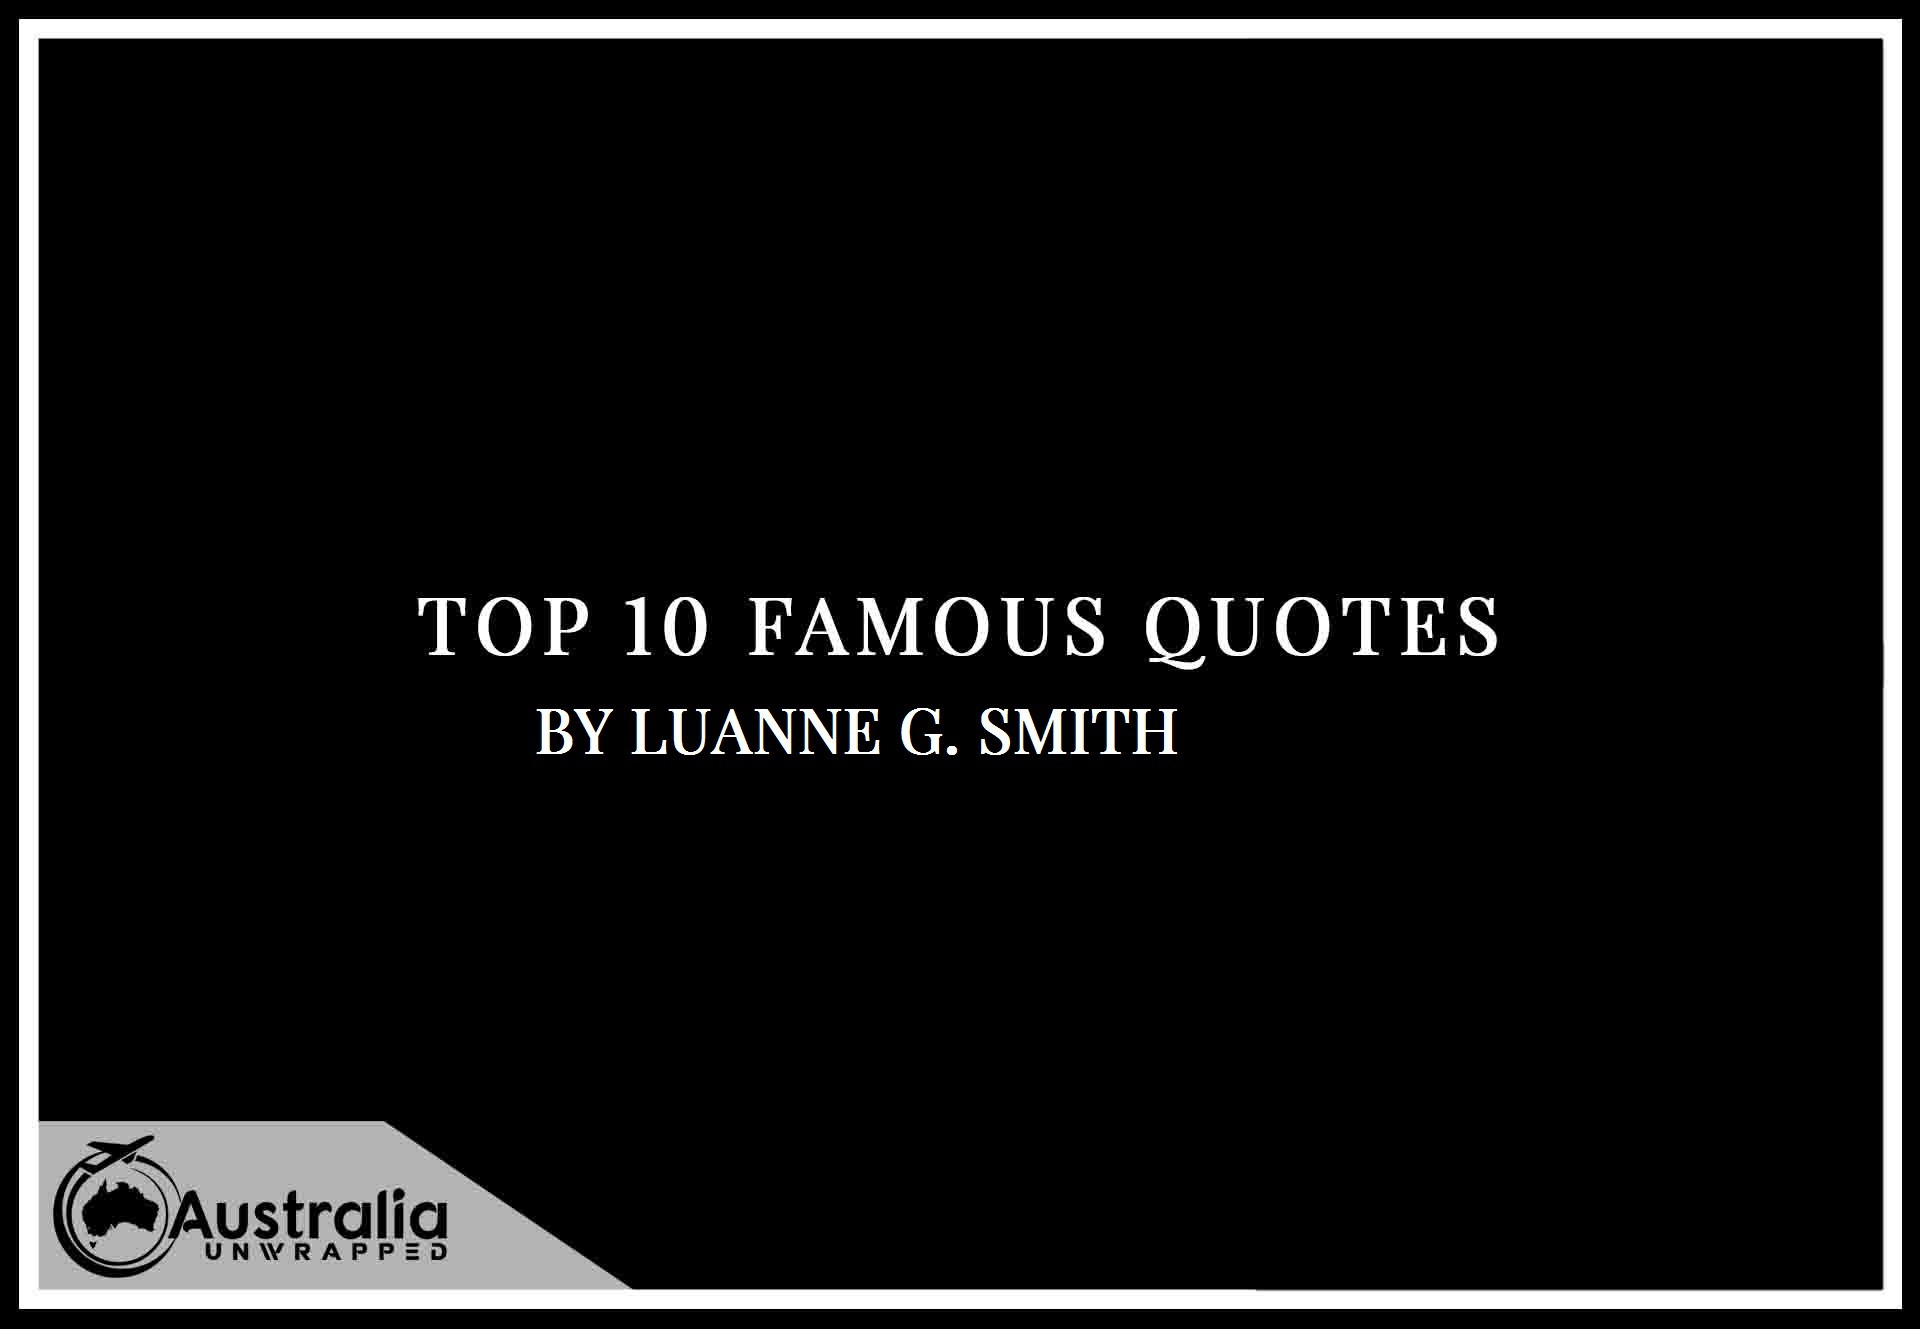 Luanne G. Smith's Top 10 Popular and Famous Quotes